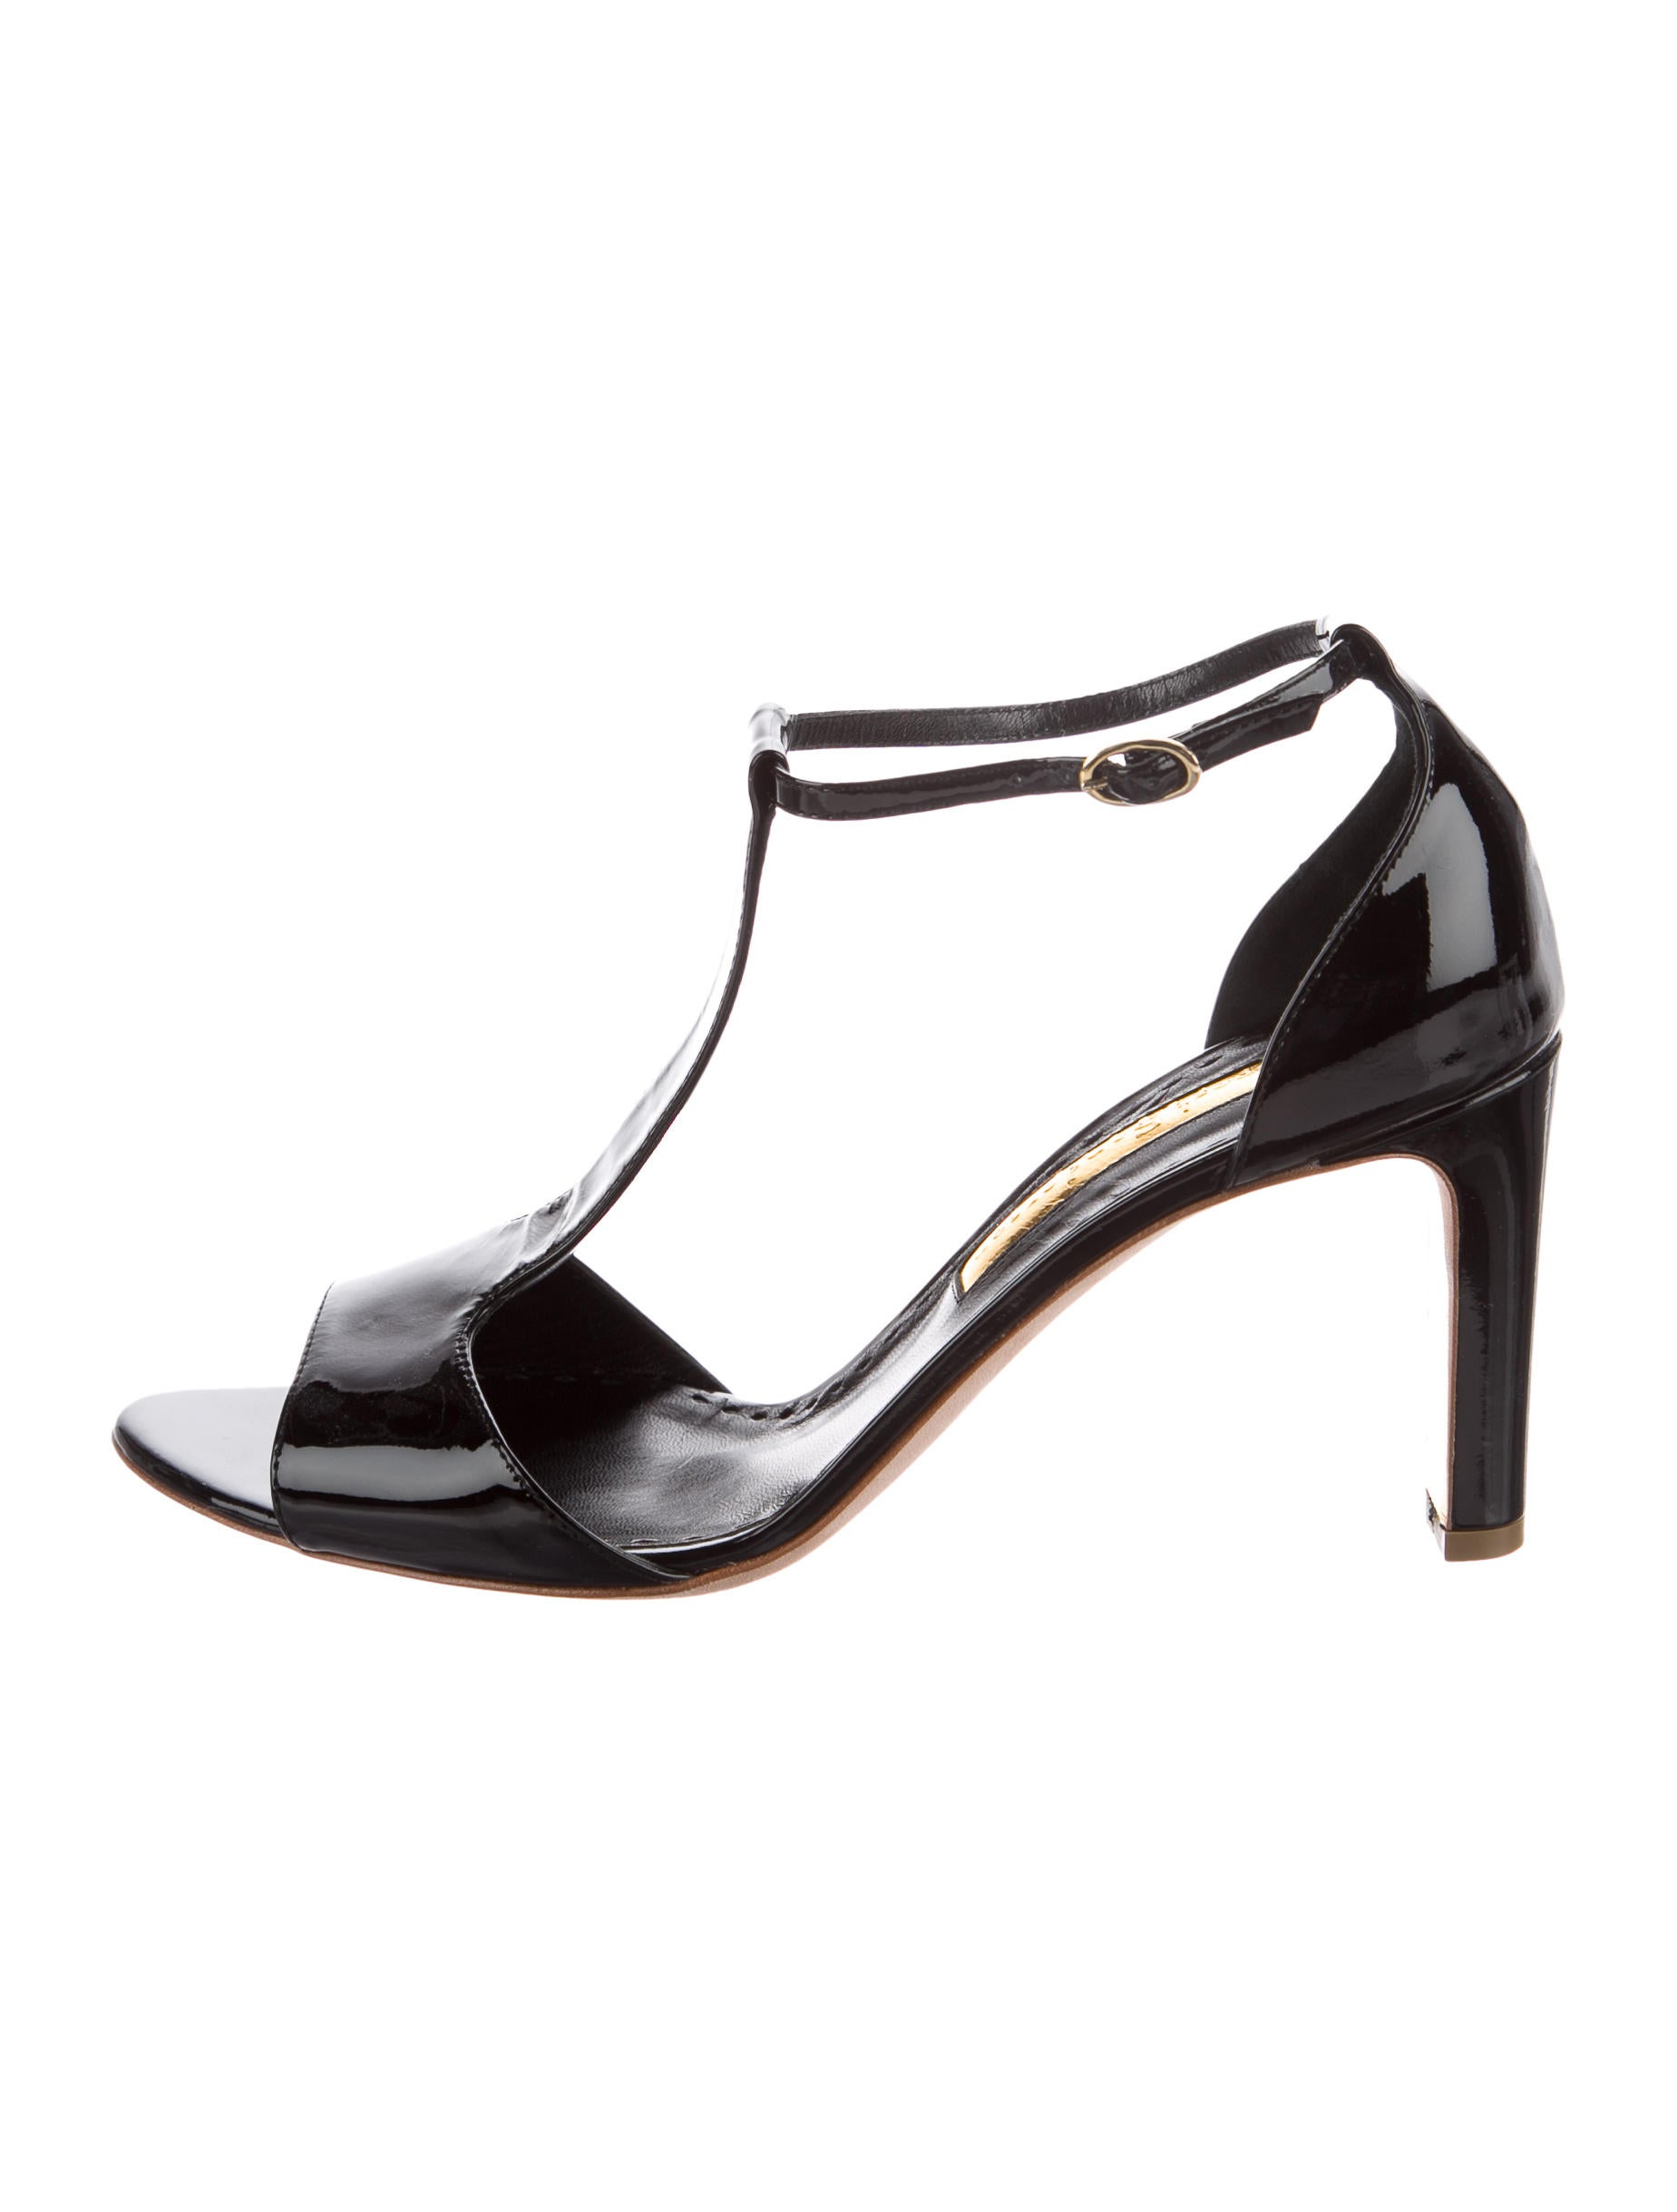 Rupert Sanderson Jana Patent Leather Sandals free shipping very cheap discount shop offer collections online official cheap price low shipping fee cheap online AKBZgiS